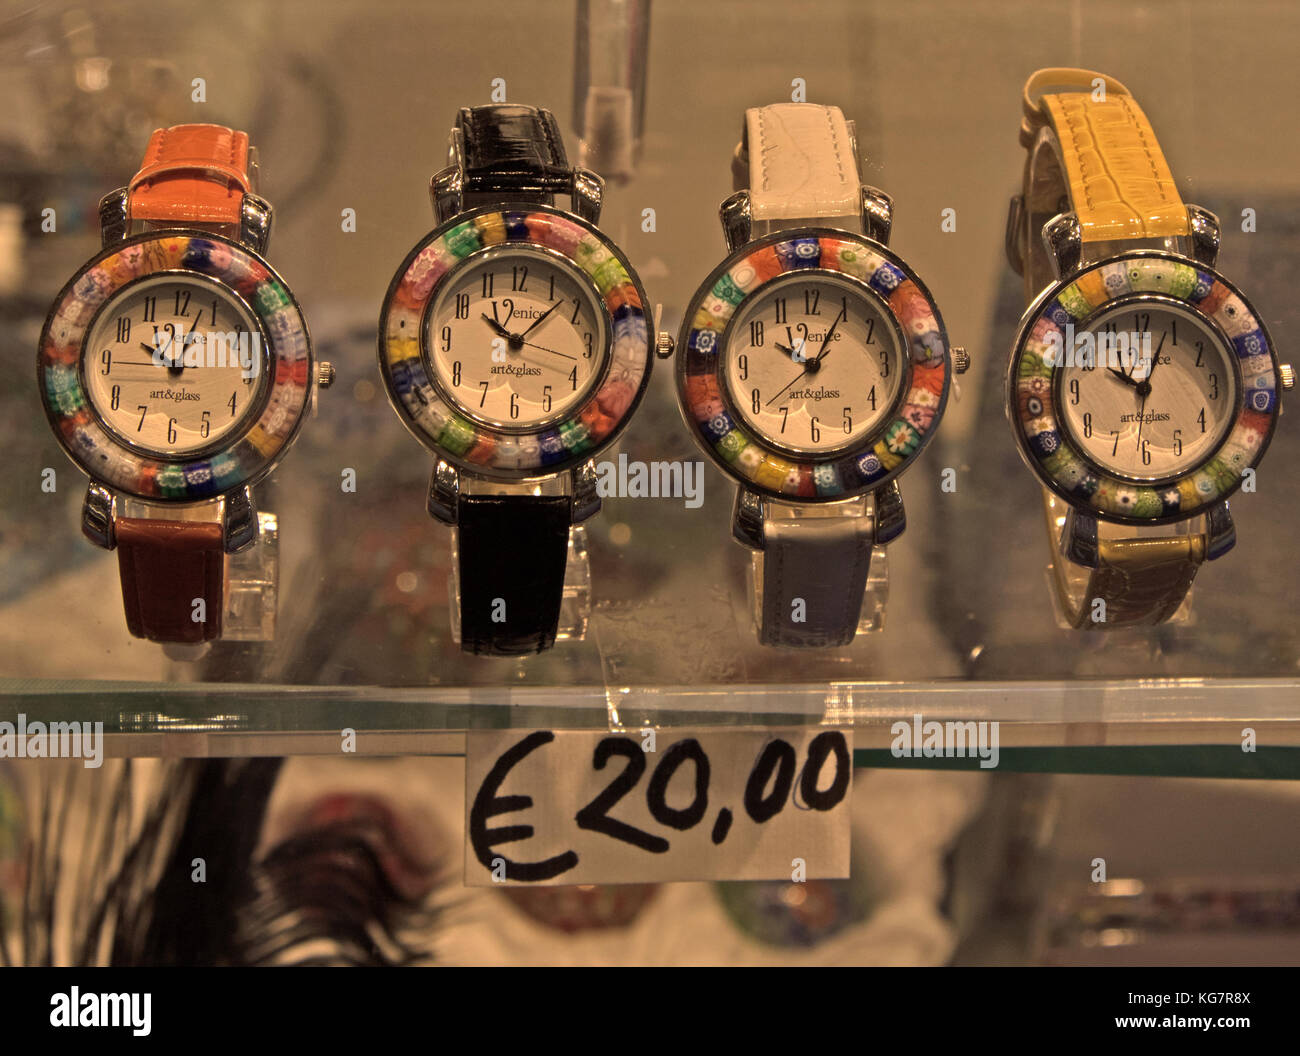 Watches in Venice Shop Window - Stock Image